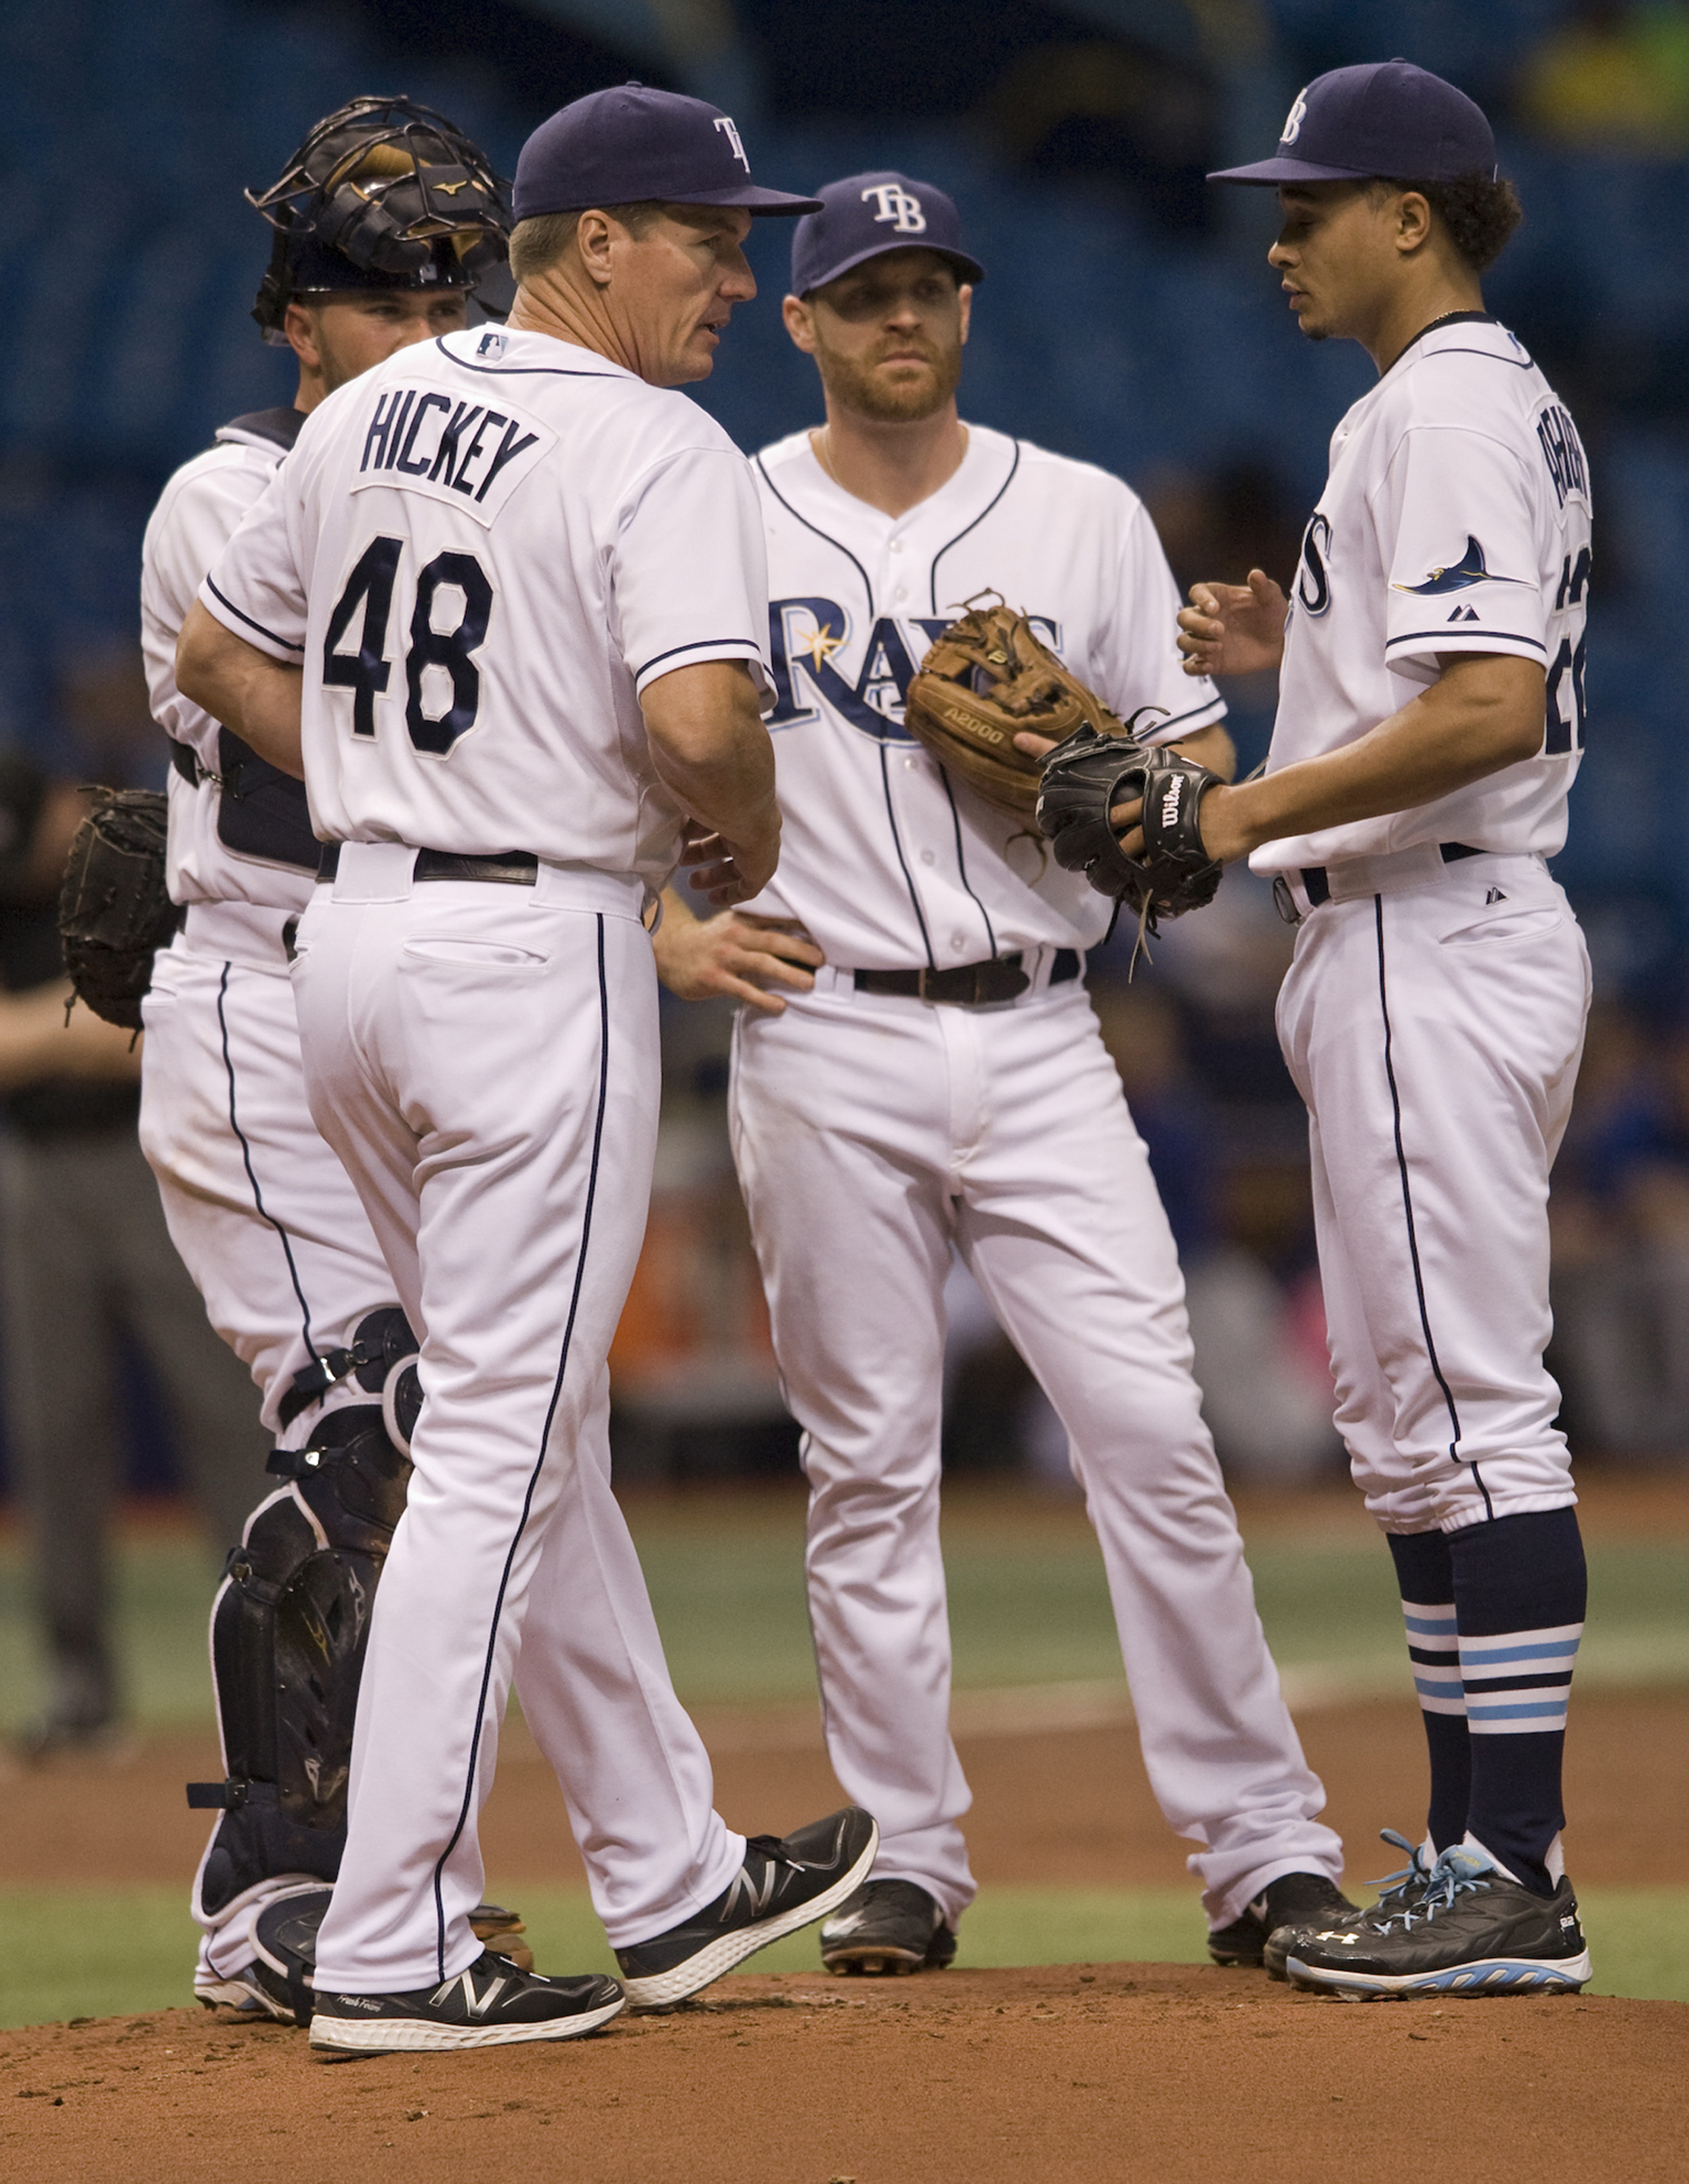 Tampa Bay Rays pitching coach Jim Hickey (48) comes to the mound to talk with catcher Bobby Wilson, left, infielder Logan Forsythe, center, and starting pitcher Chris Archer, right, after Archer walked in back-to-back runs during the second inning of a ba